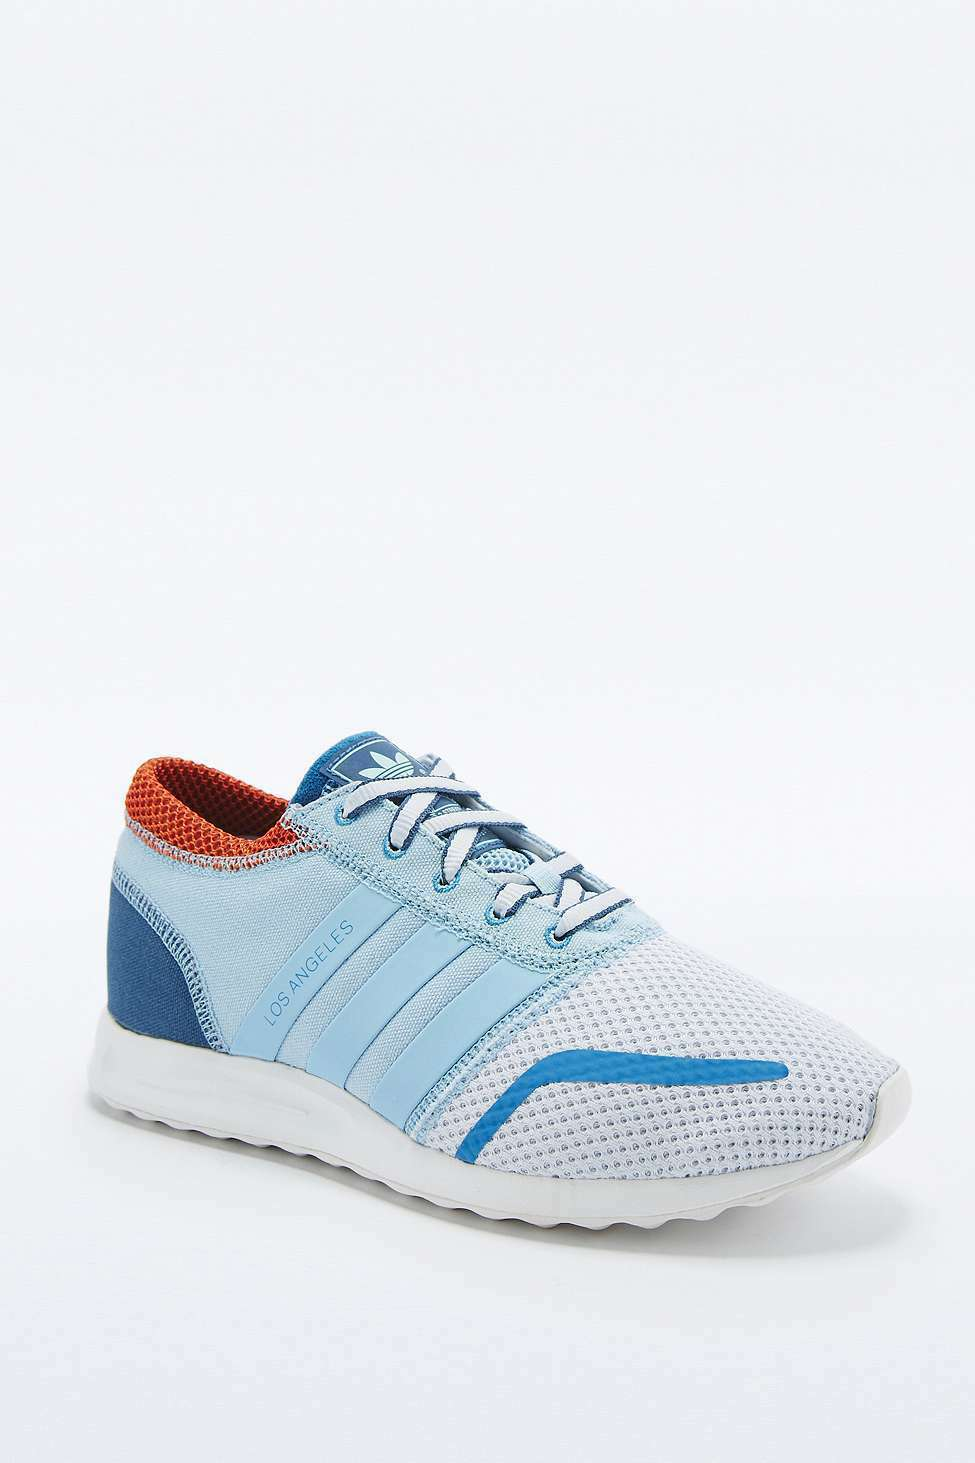 Adidas Originals Los Angeles Trainers shoes (AF4225) - bluee - UK 4 -   New